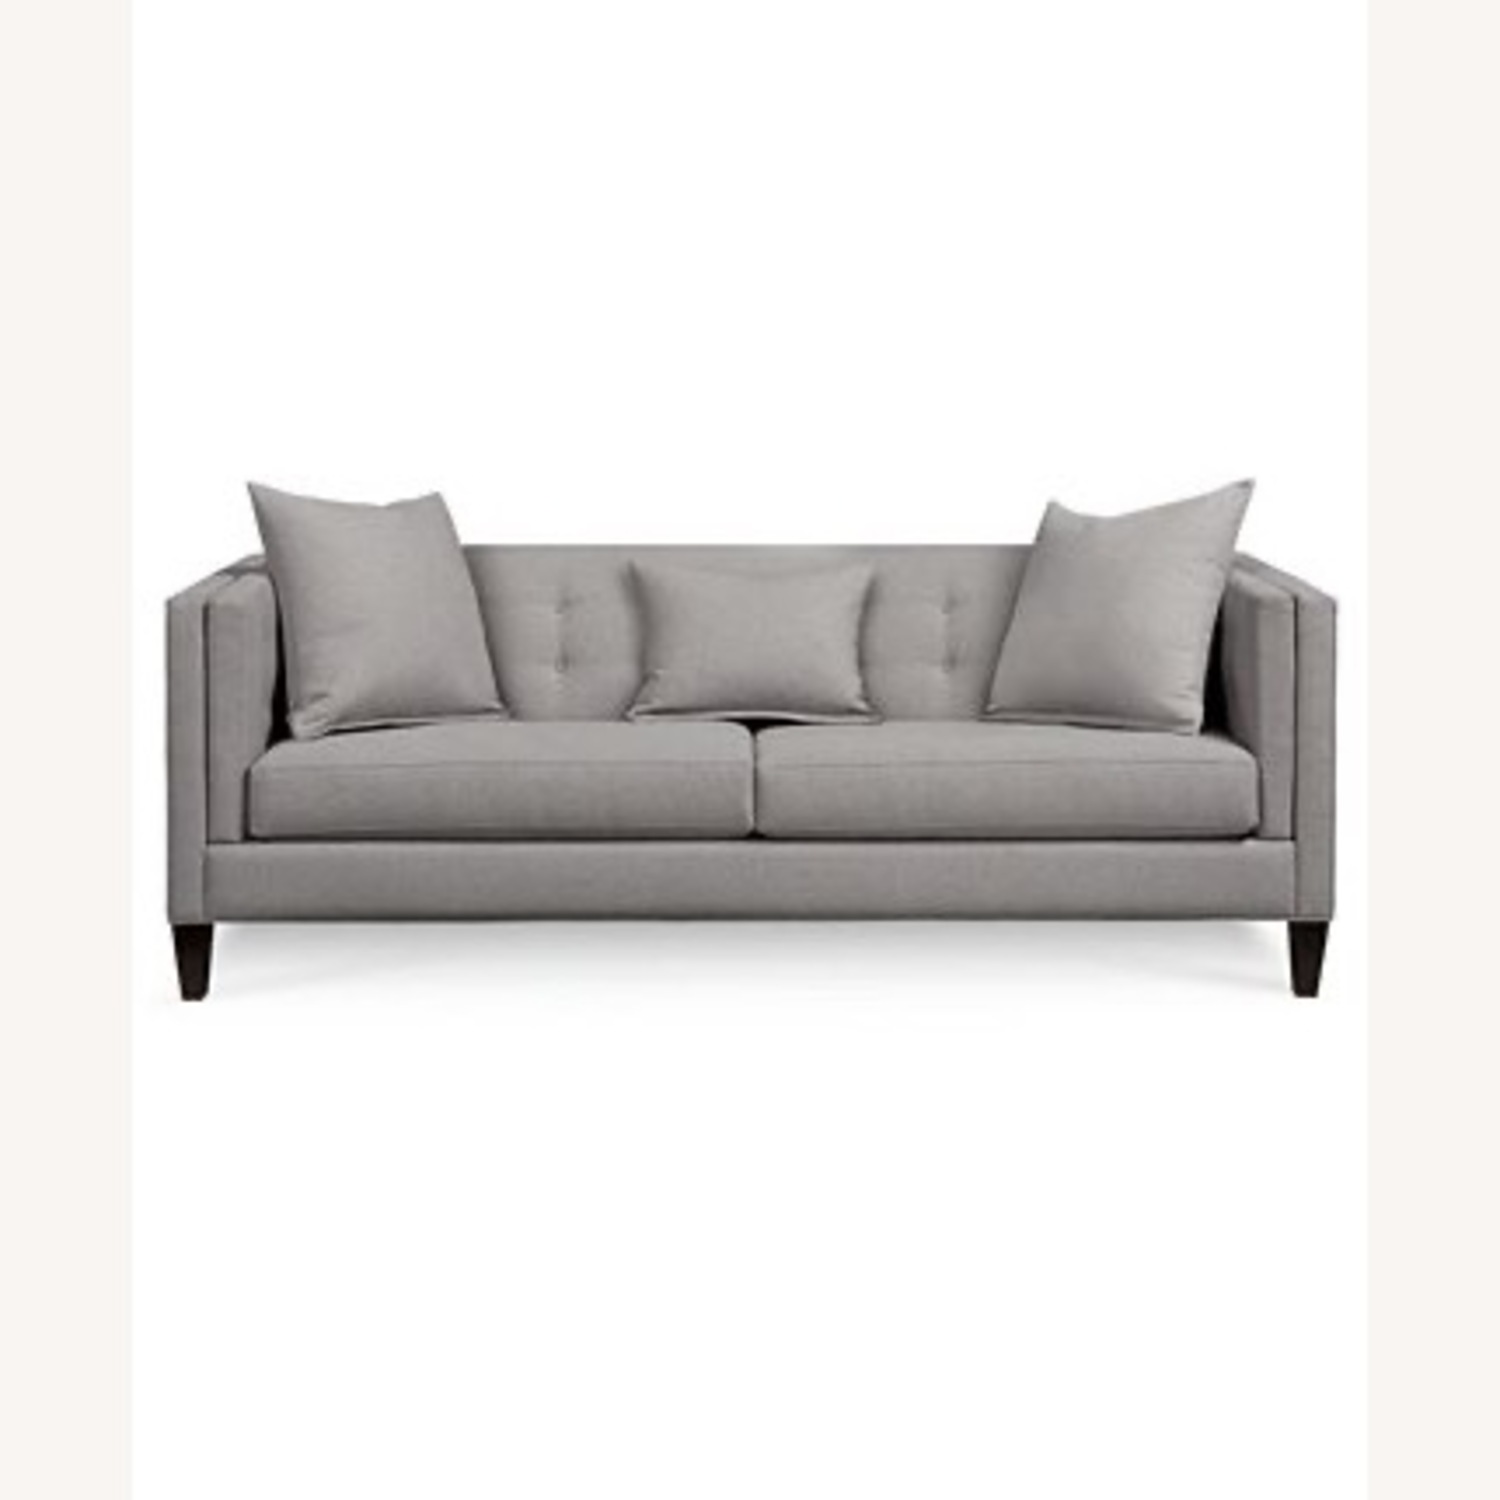 Macy's Braylei 88inch Track Arm Sofa Heather Gray - image-1